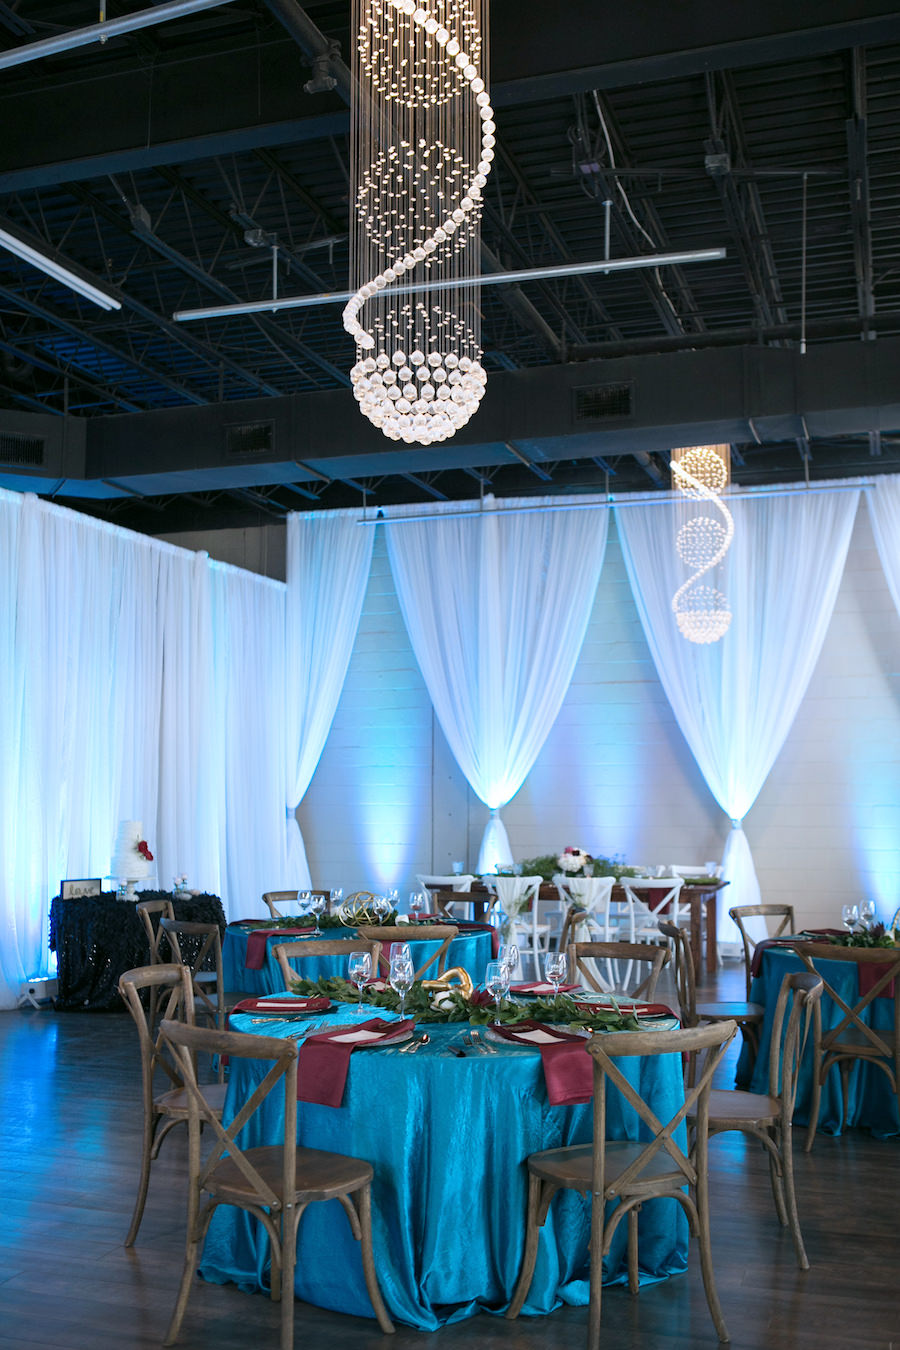 French Country Chairs with Teal Specialty Linens and White Draping | Modern Wedding Reception Decor Ideas and Inspiration | Tampa Wedding Venue Ivy Astoria | Chair Rentals A Chair Affair